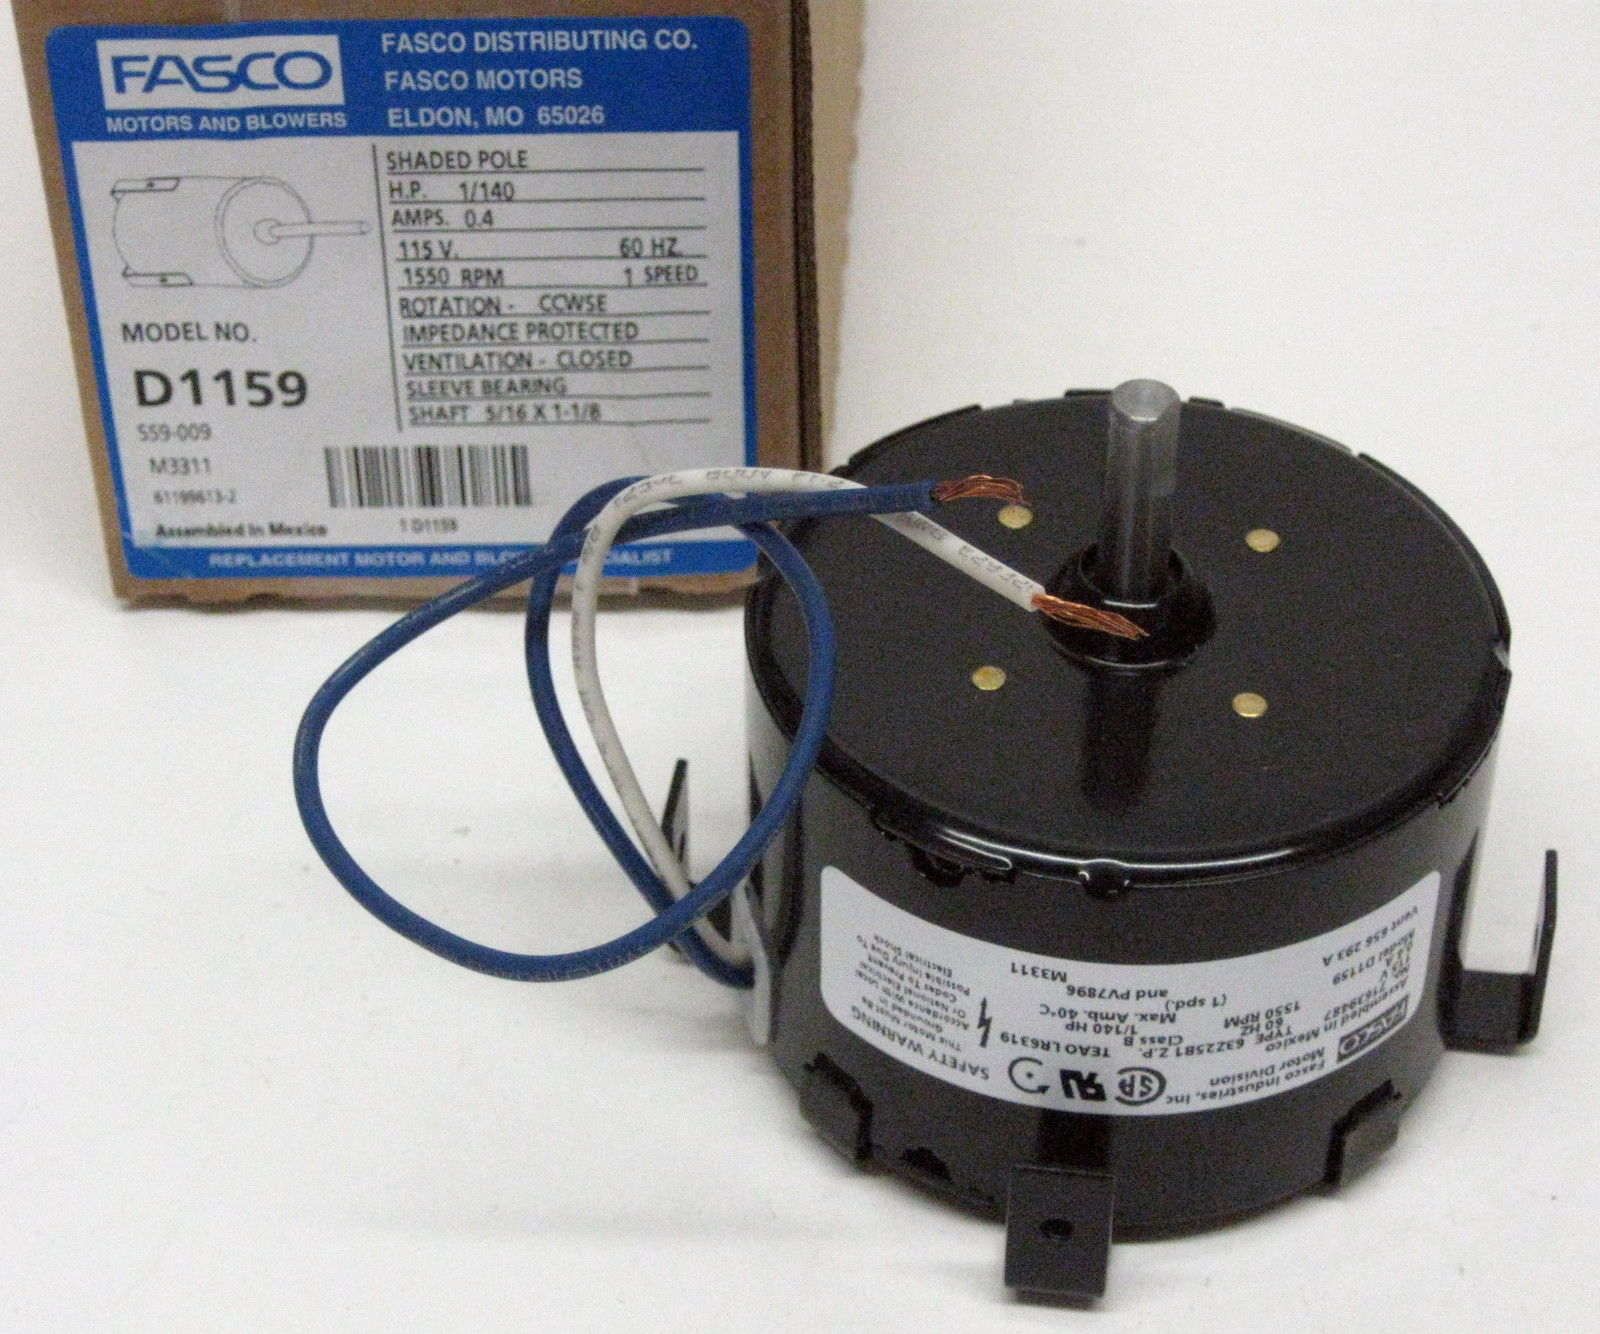 D1159 Fasco Bathroom Fan Vent Motor for 7163-1845 656 293A PV7896 | eBay